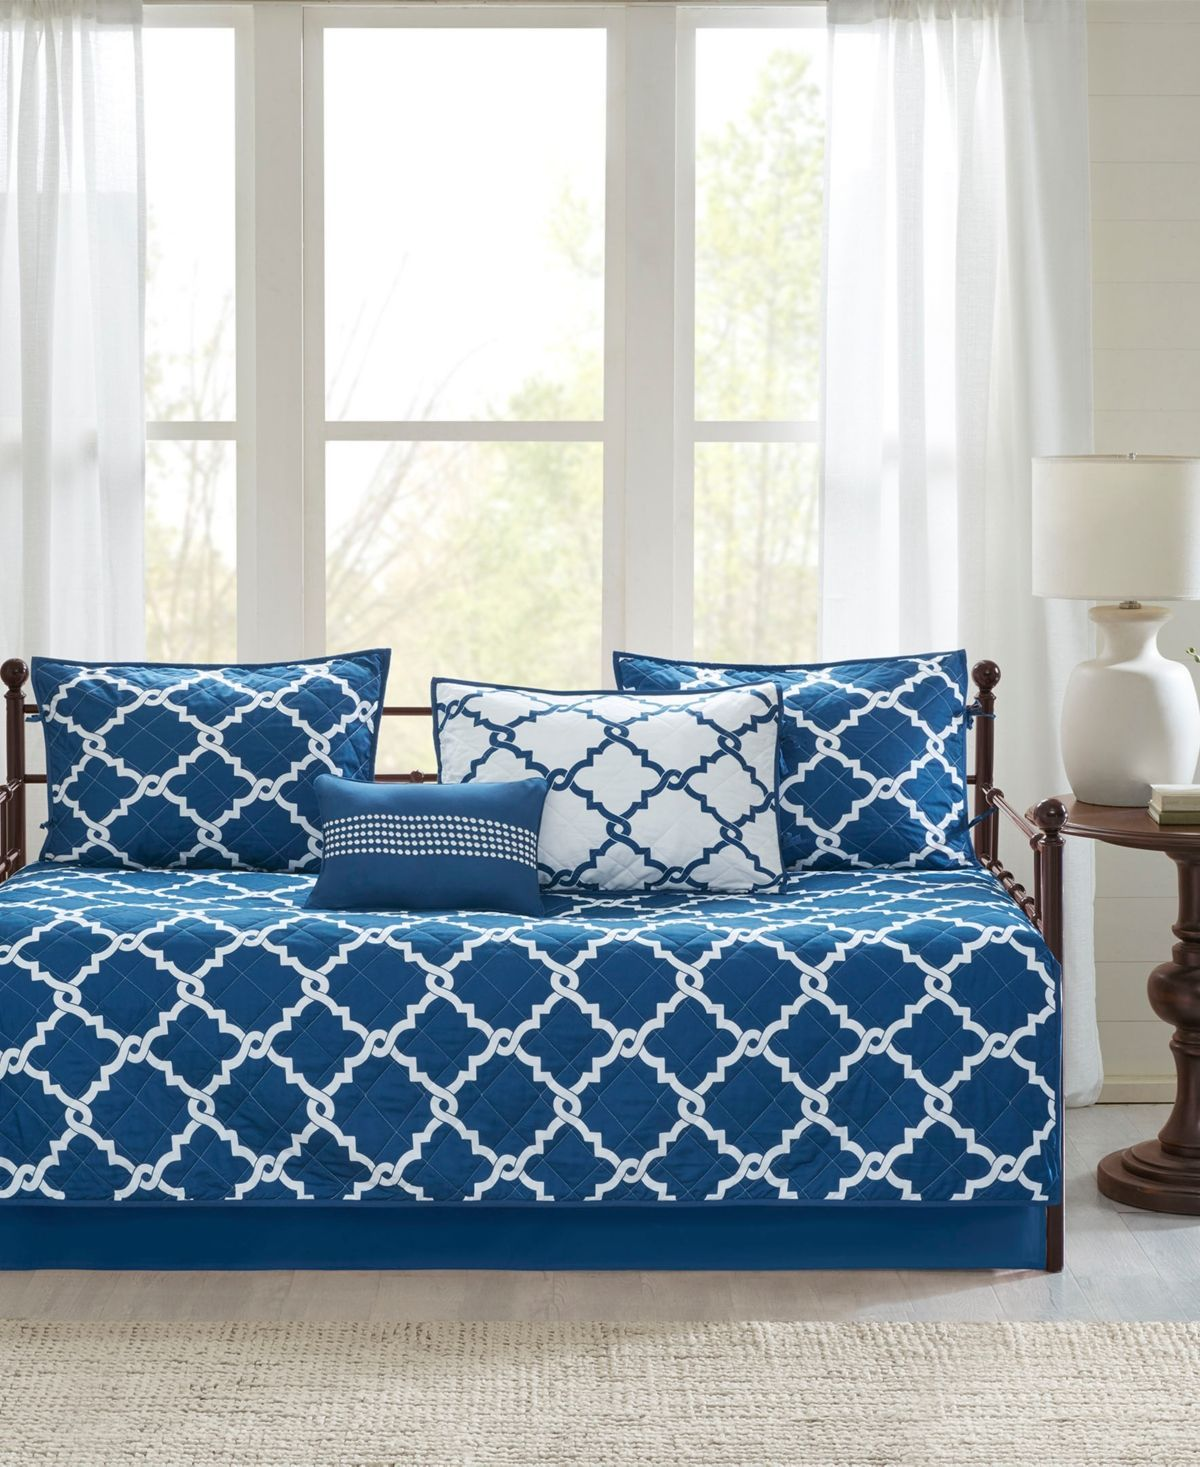 Madison Park Essentials Merritt 6 Pc Reversible Daybed Bedding Set Navy White Homedecorcurtains In 2020 Daybed Bedding Sets Daybed Sets Daybed Bedding